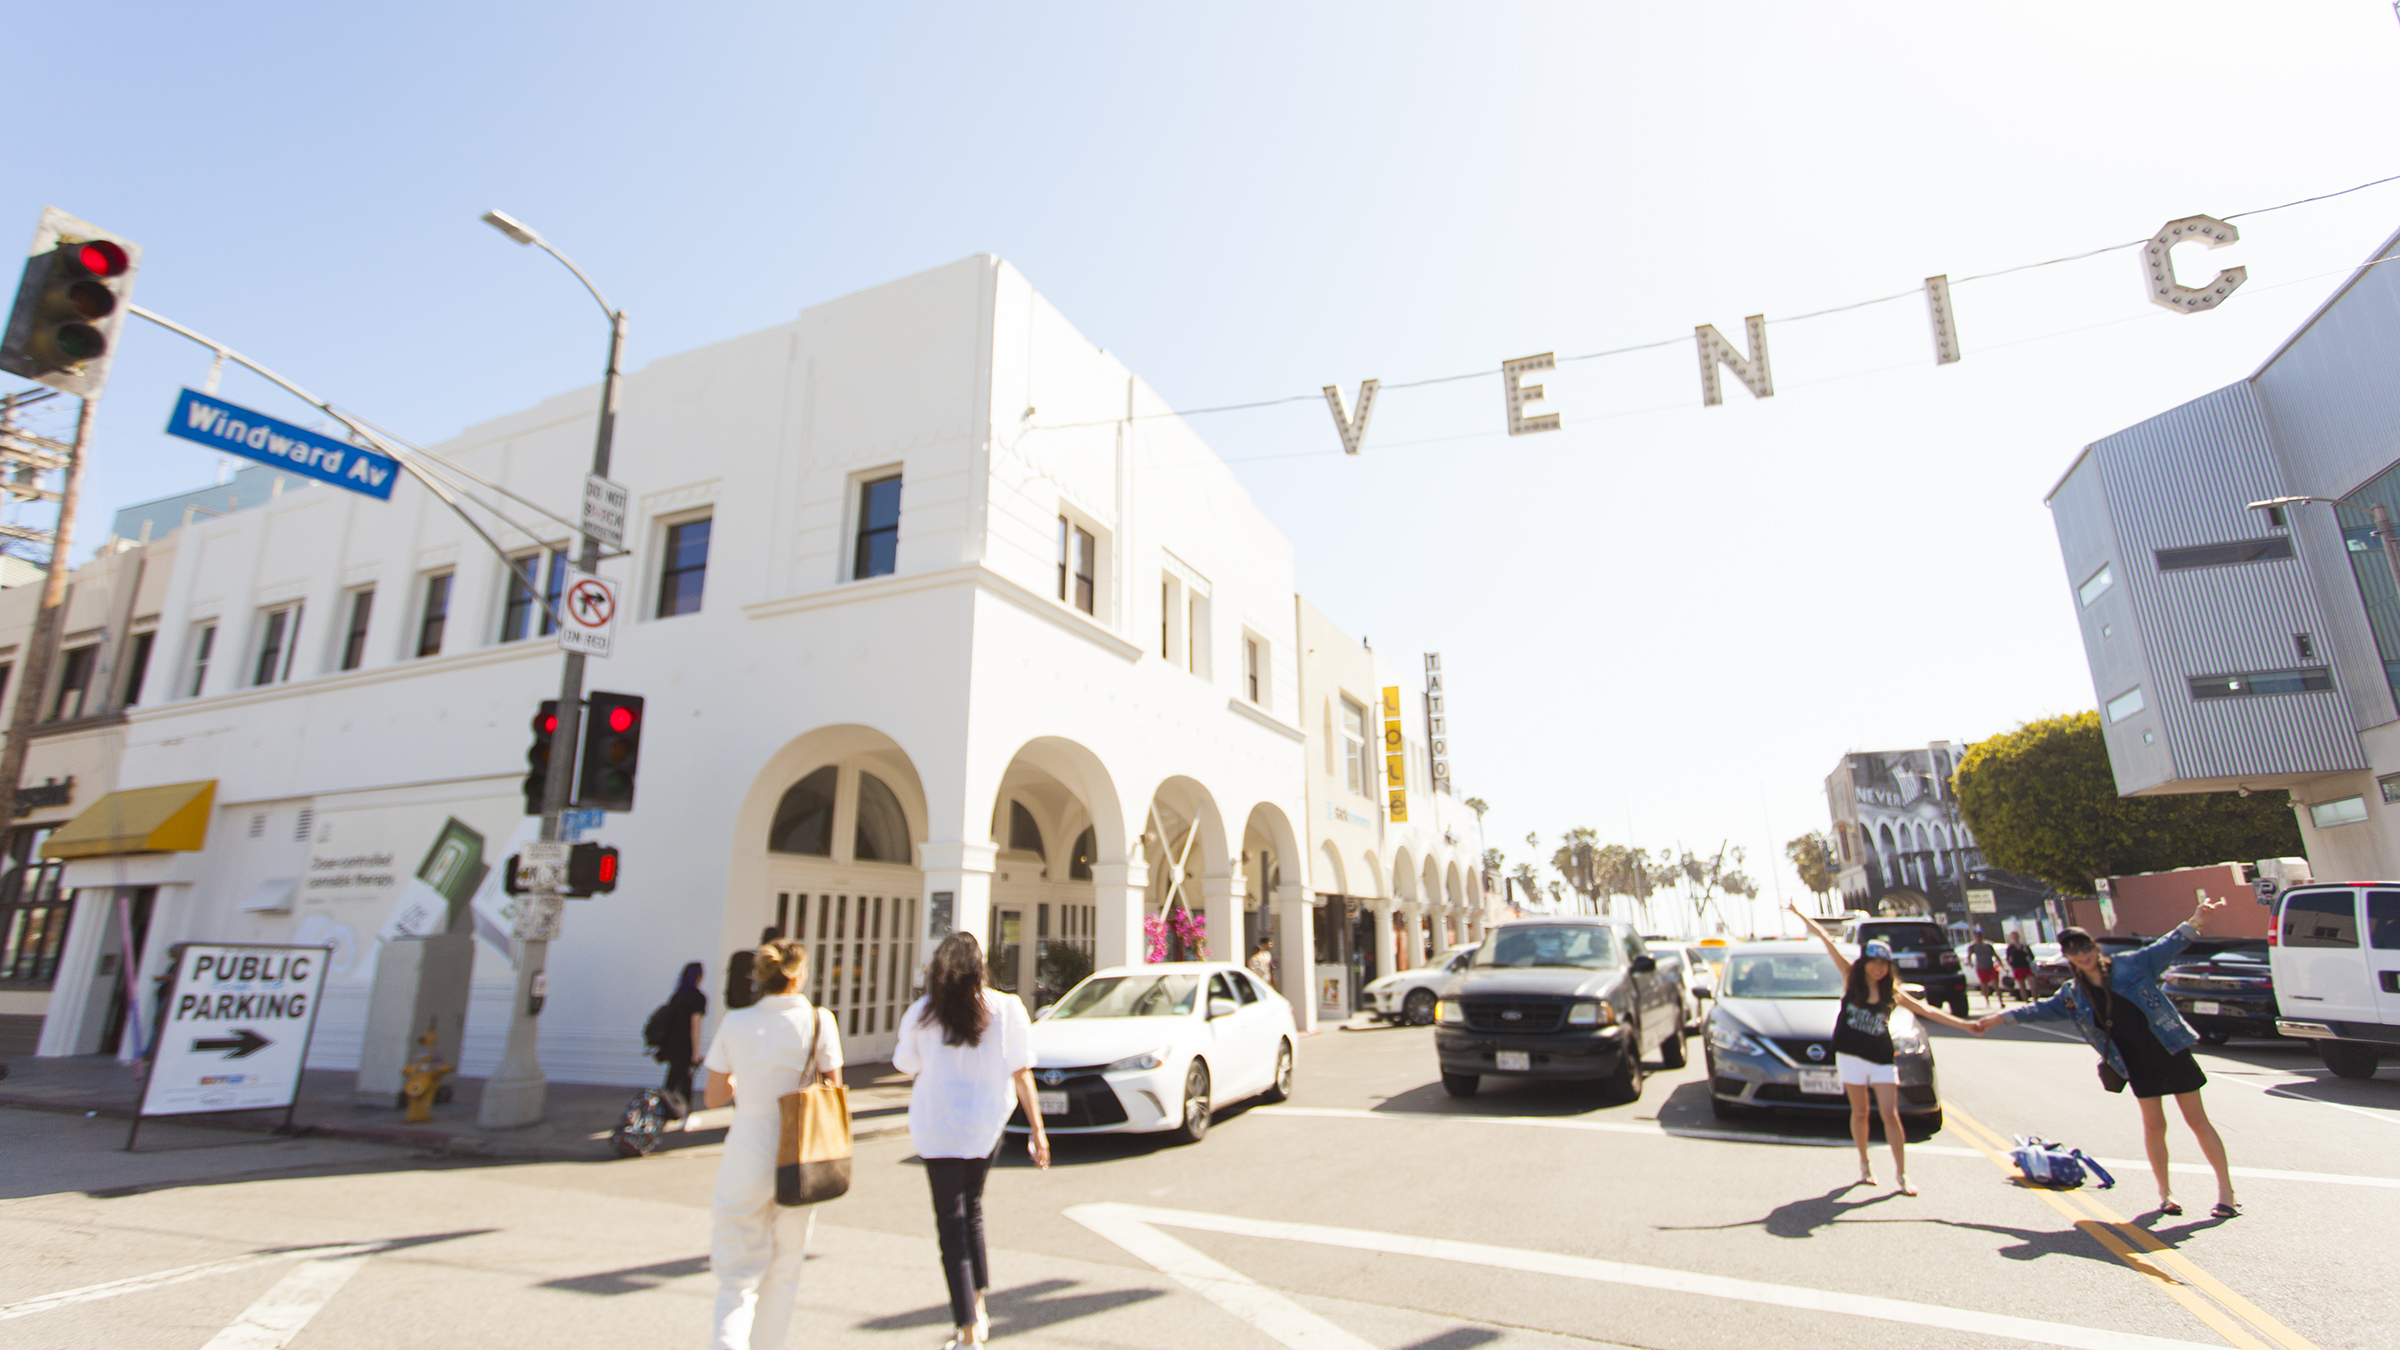 """Aussie café Great White launched a new restaurant and bar right below the """"Venice"""" sign"""